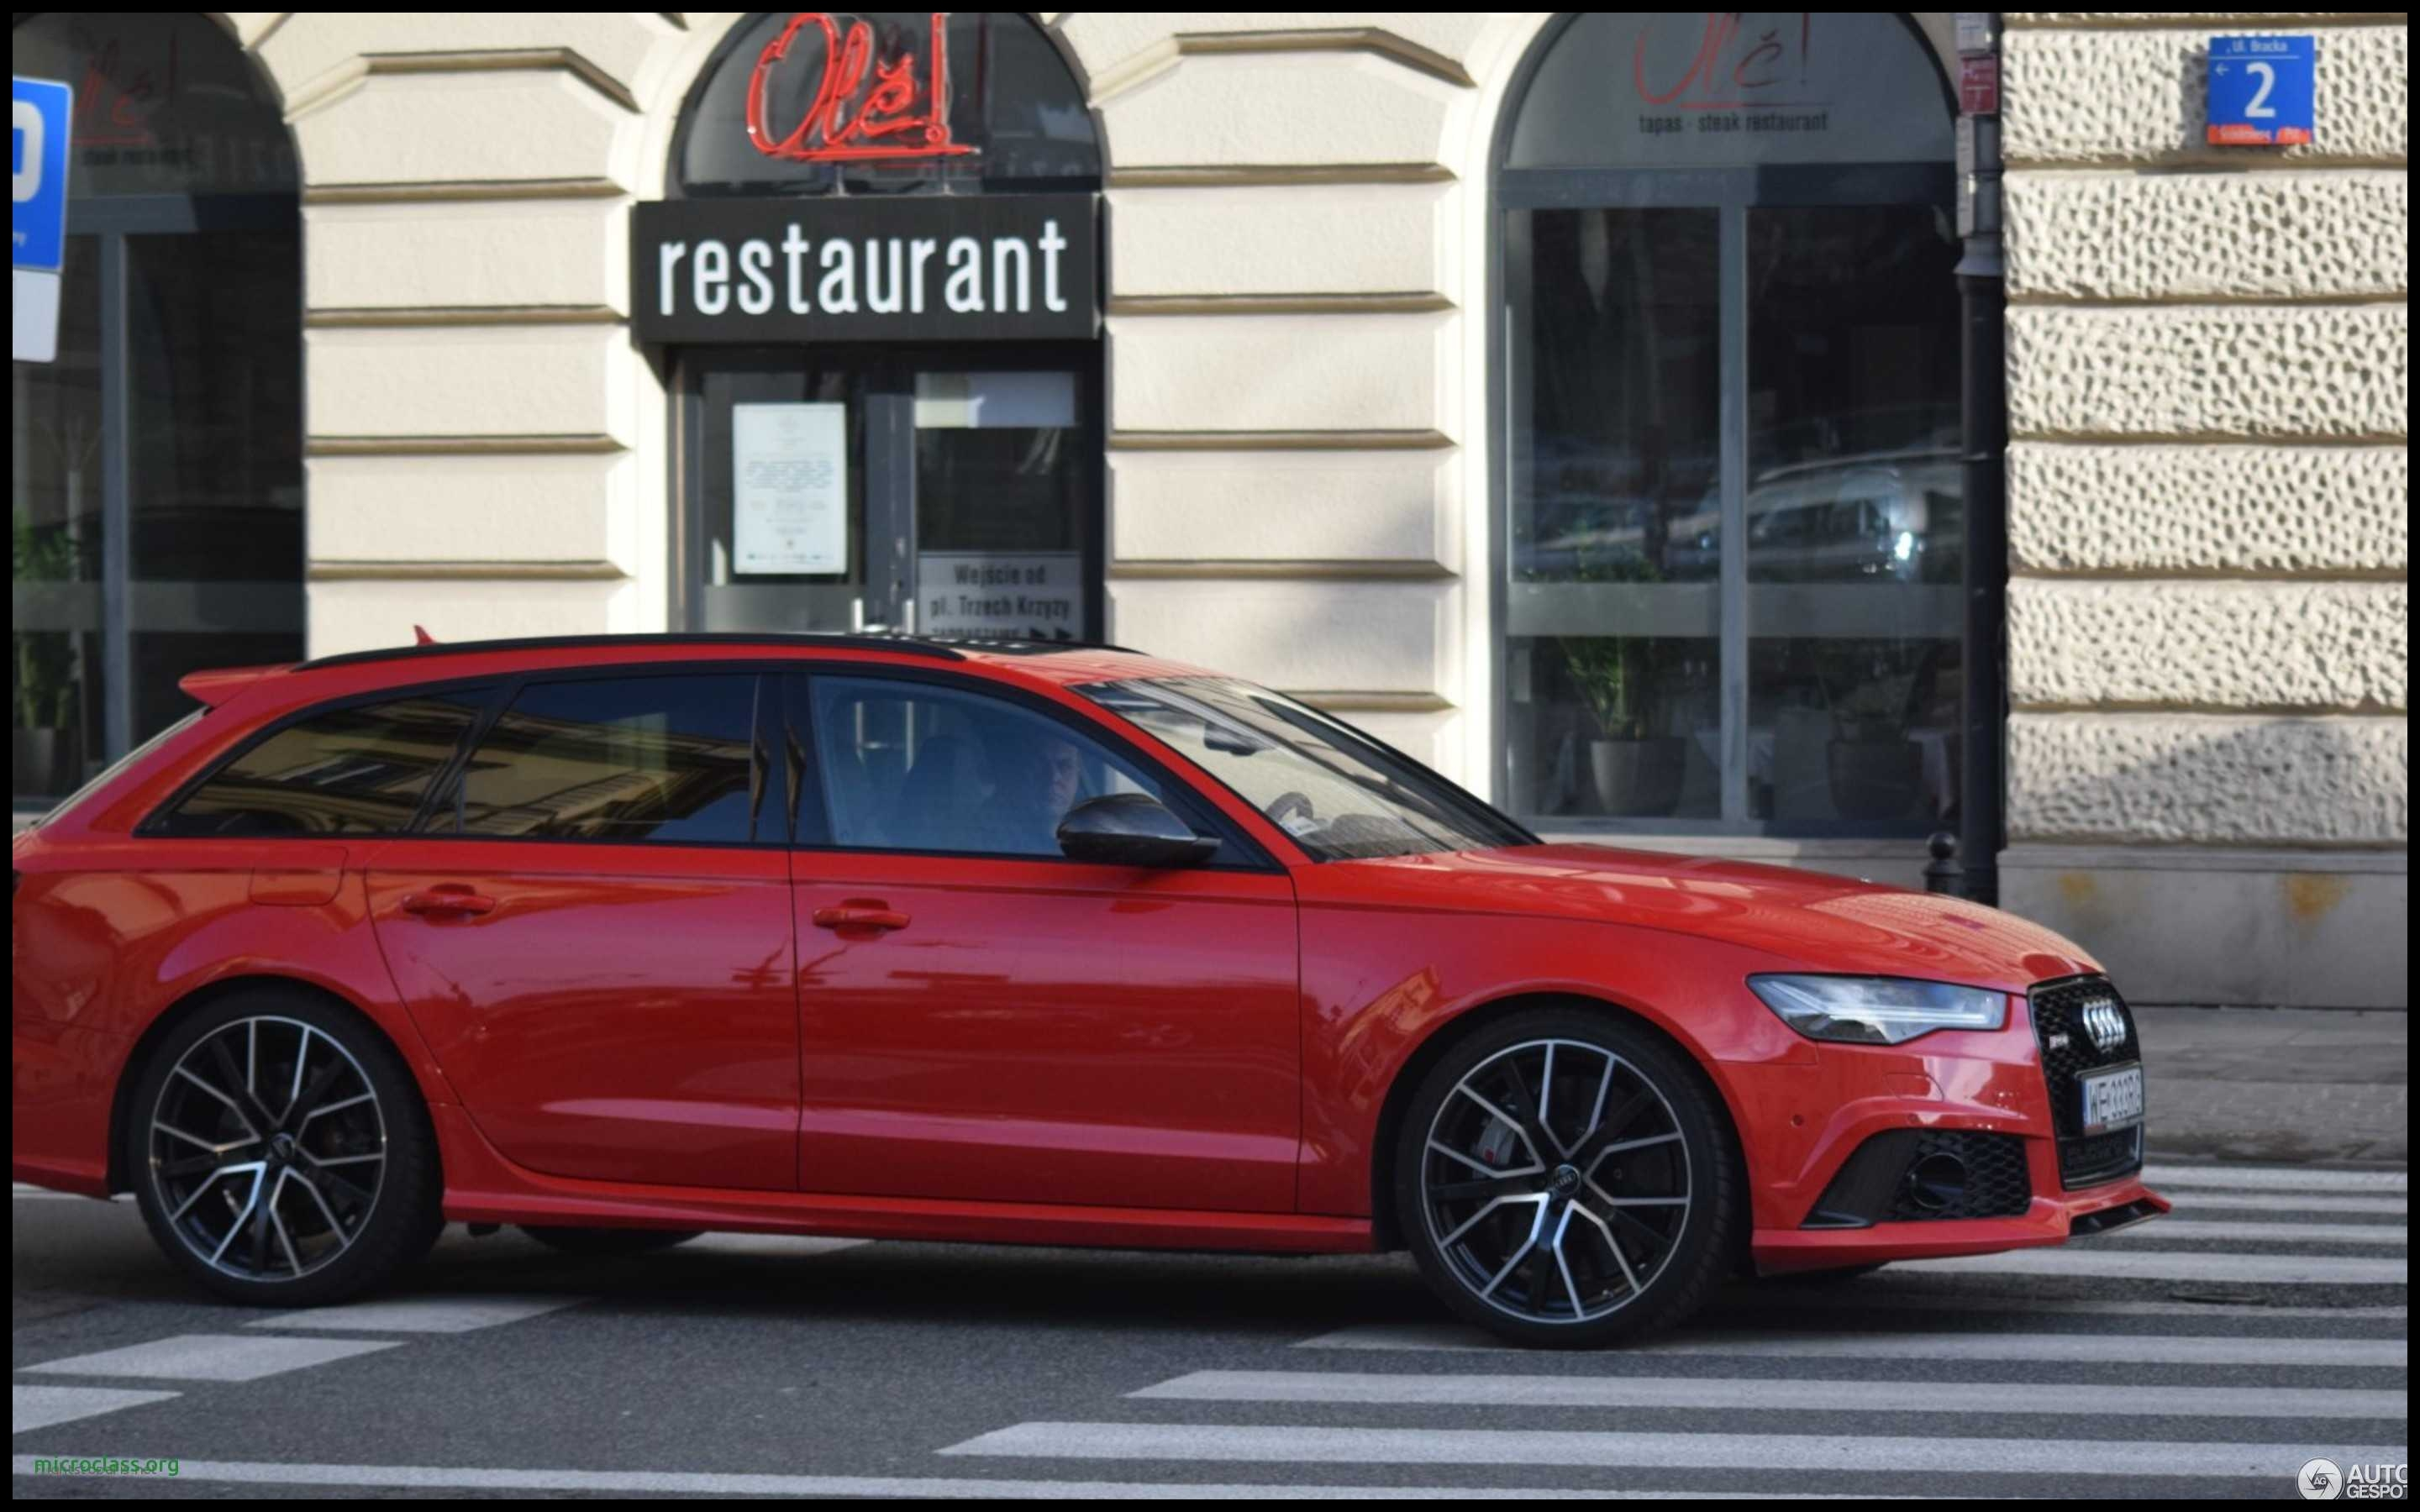 2019 Audi Rs6 Avant Price Inspirational 2019 ford Troller New Interior